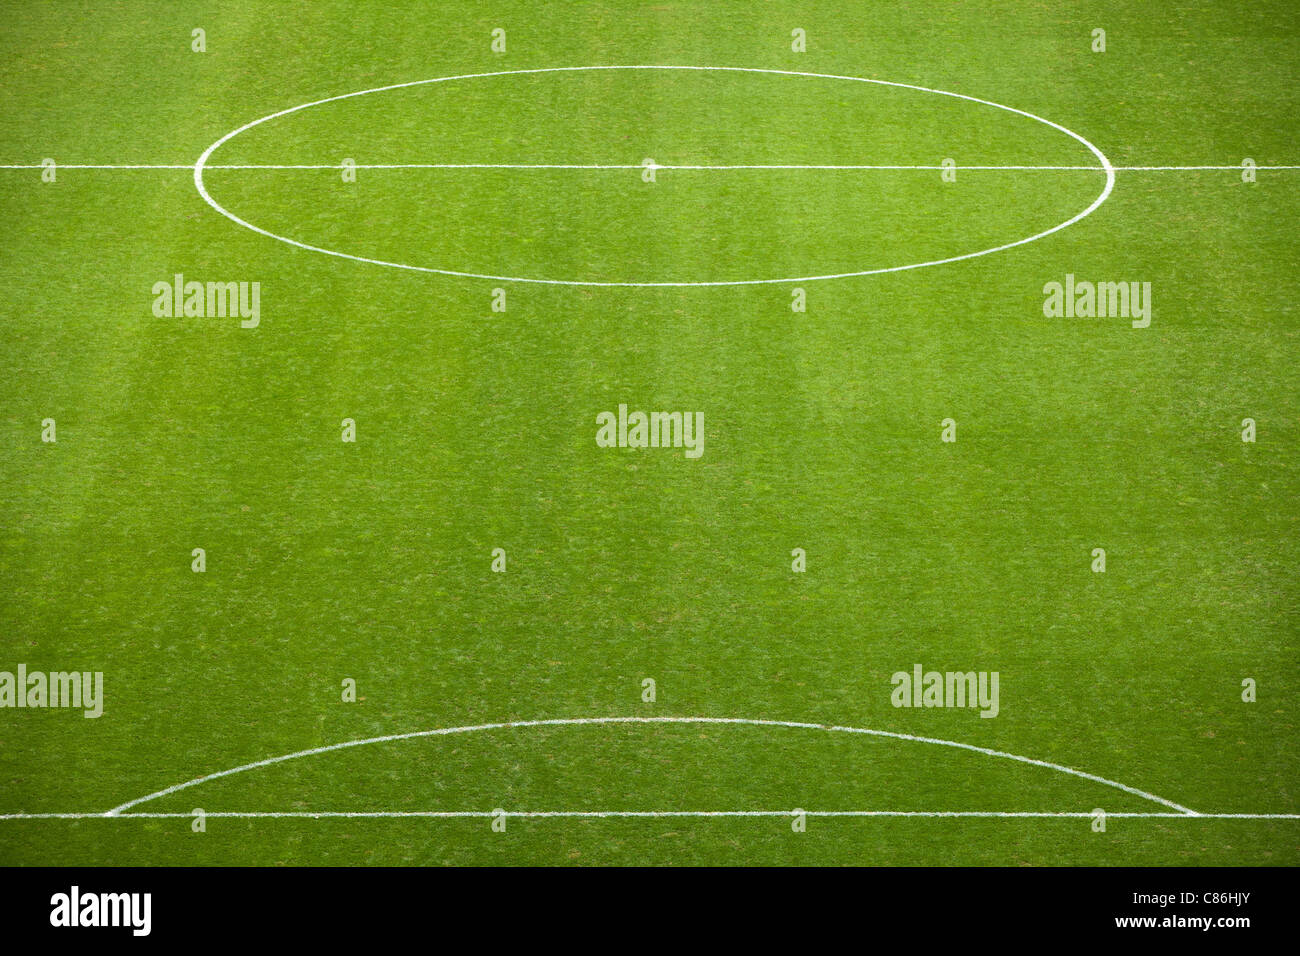 Lined soccer field - Stock Image